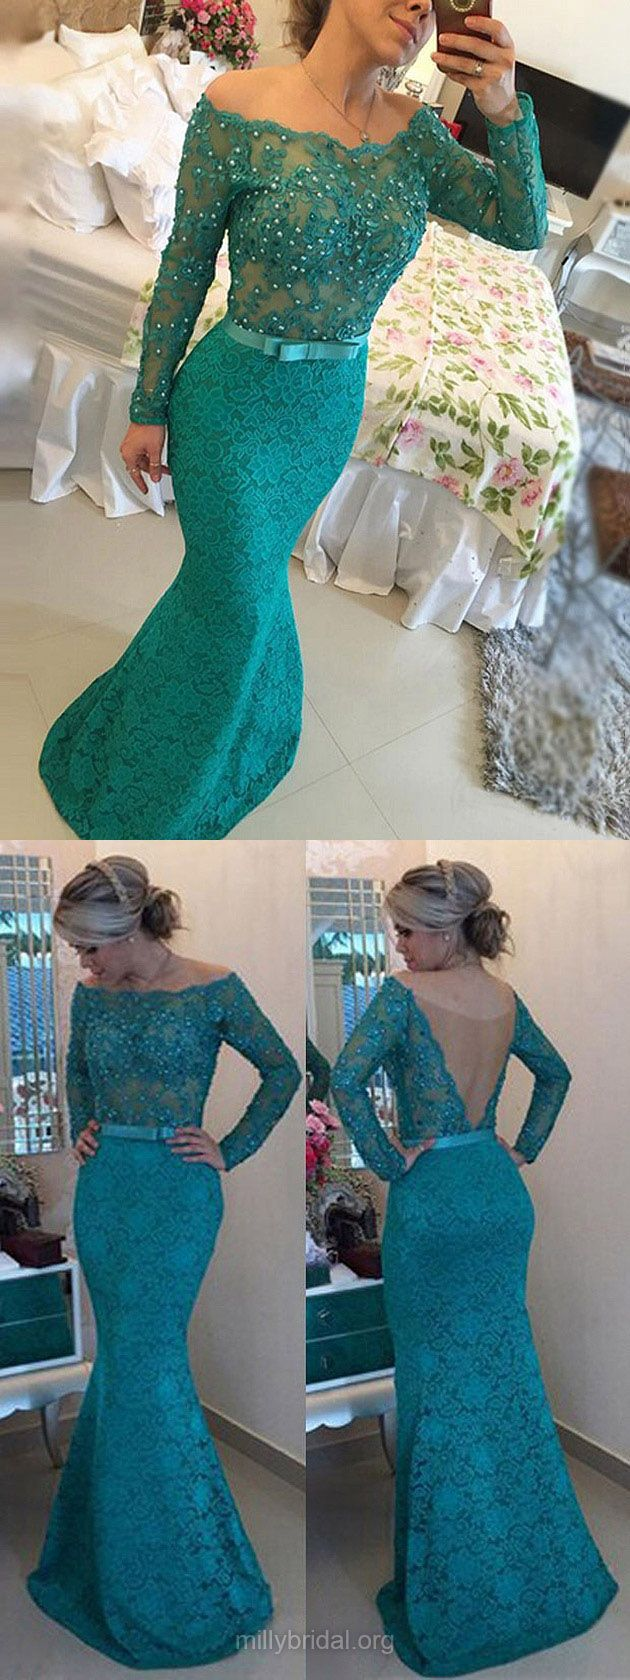 Long Sleeve Lace Prom Dresses, Off the shoulder Teal Prom Dress with Lace Appliques, Pearl Beaded long Elegant Prom Dress with a Chic Bow